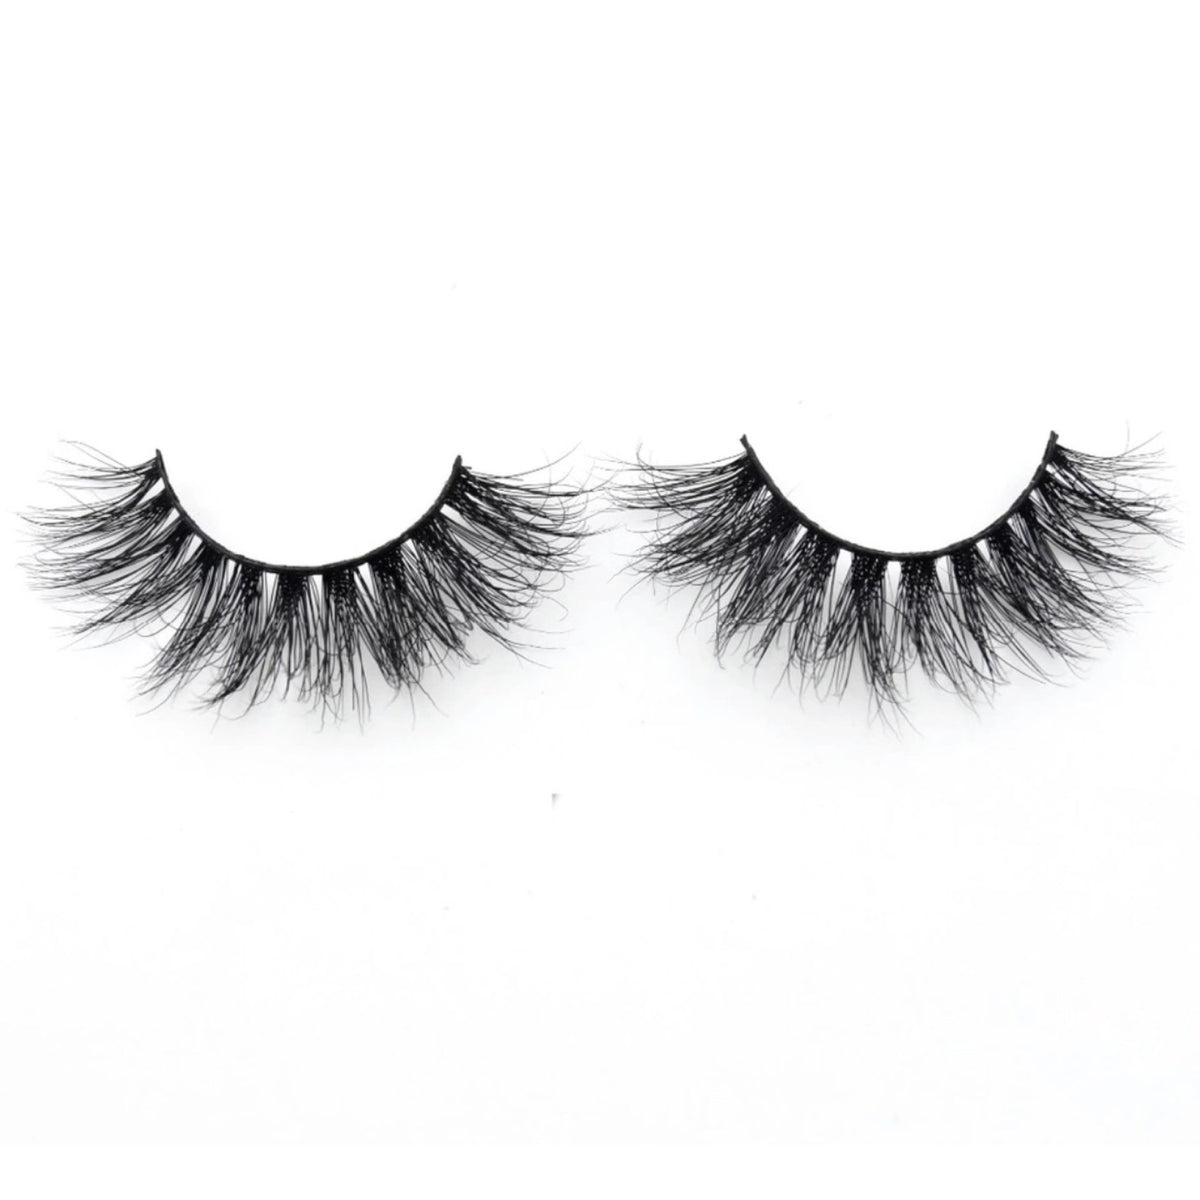 Crazy In Love 3D Mink Lashes W Free Applicator - lexinoelbeauty.com